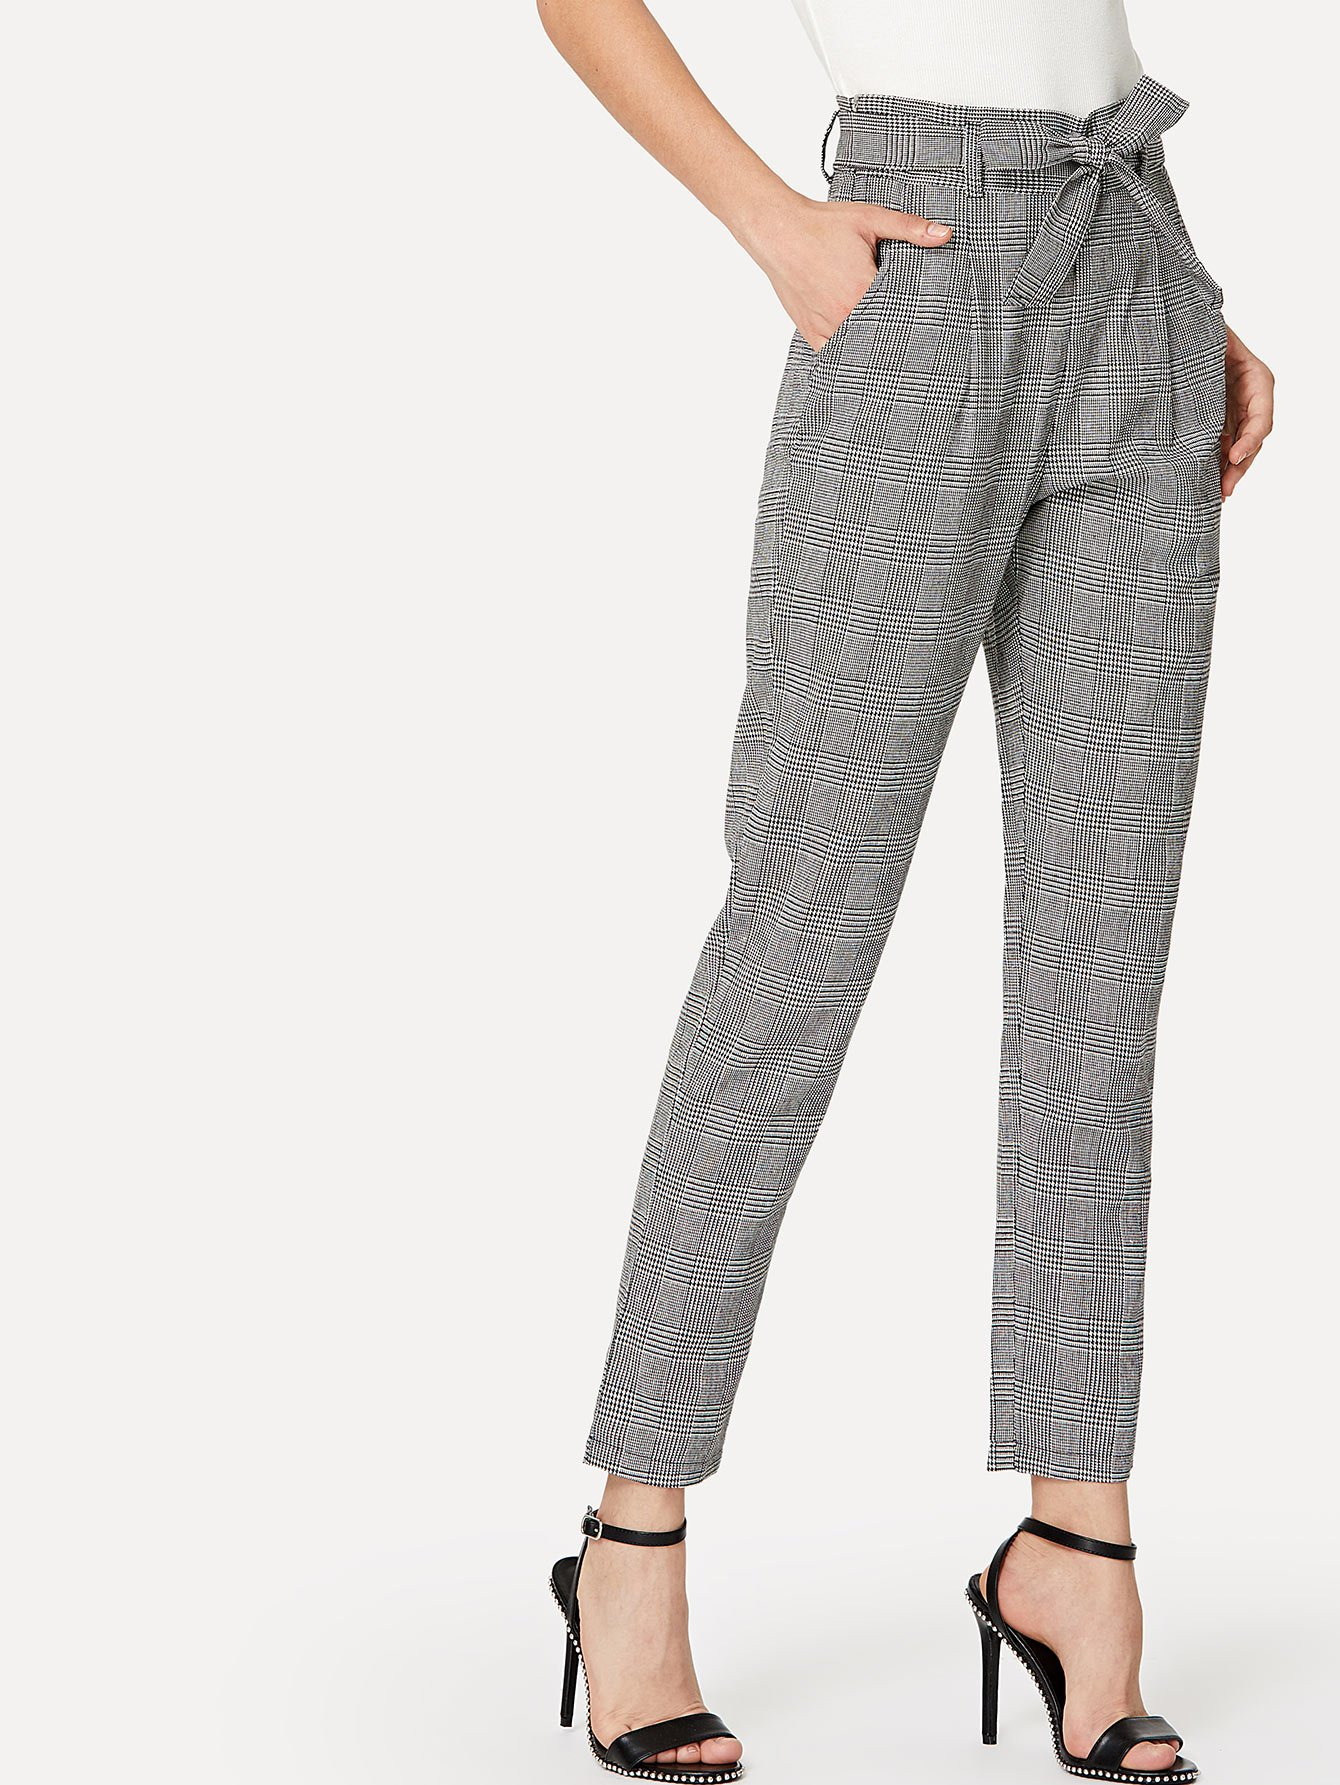 Plaid Knot Front Belted Pant knot front fit